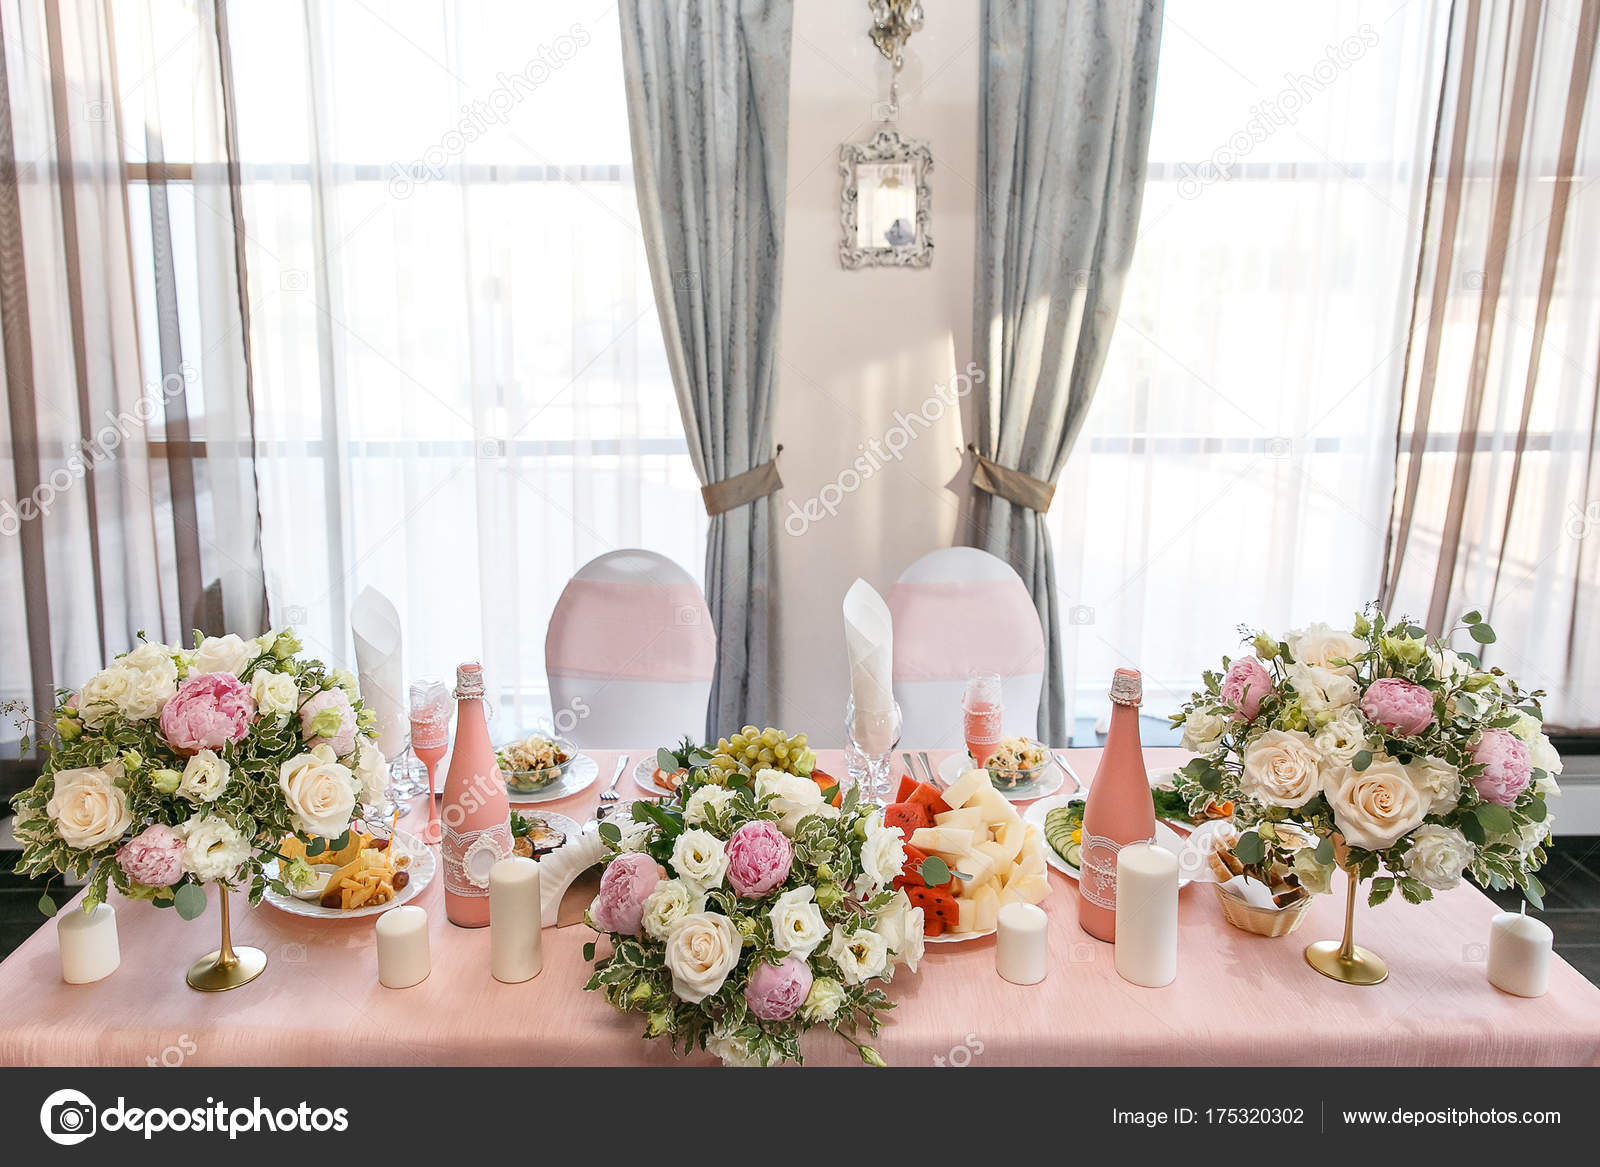 Decoration of a wedding table of newlyweds, candles, candlestick ...